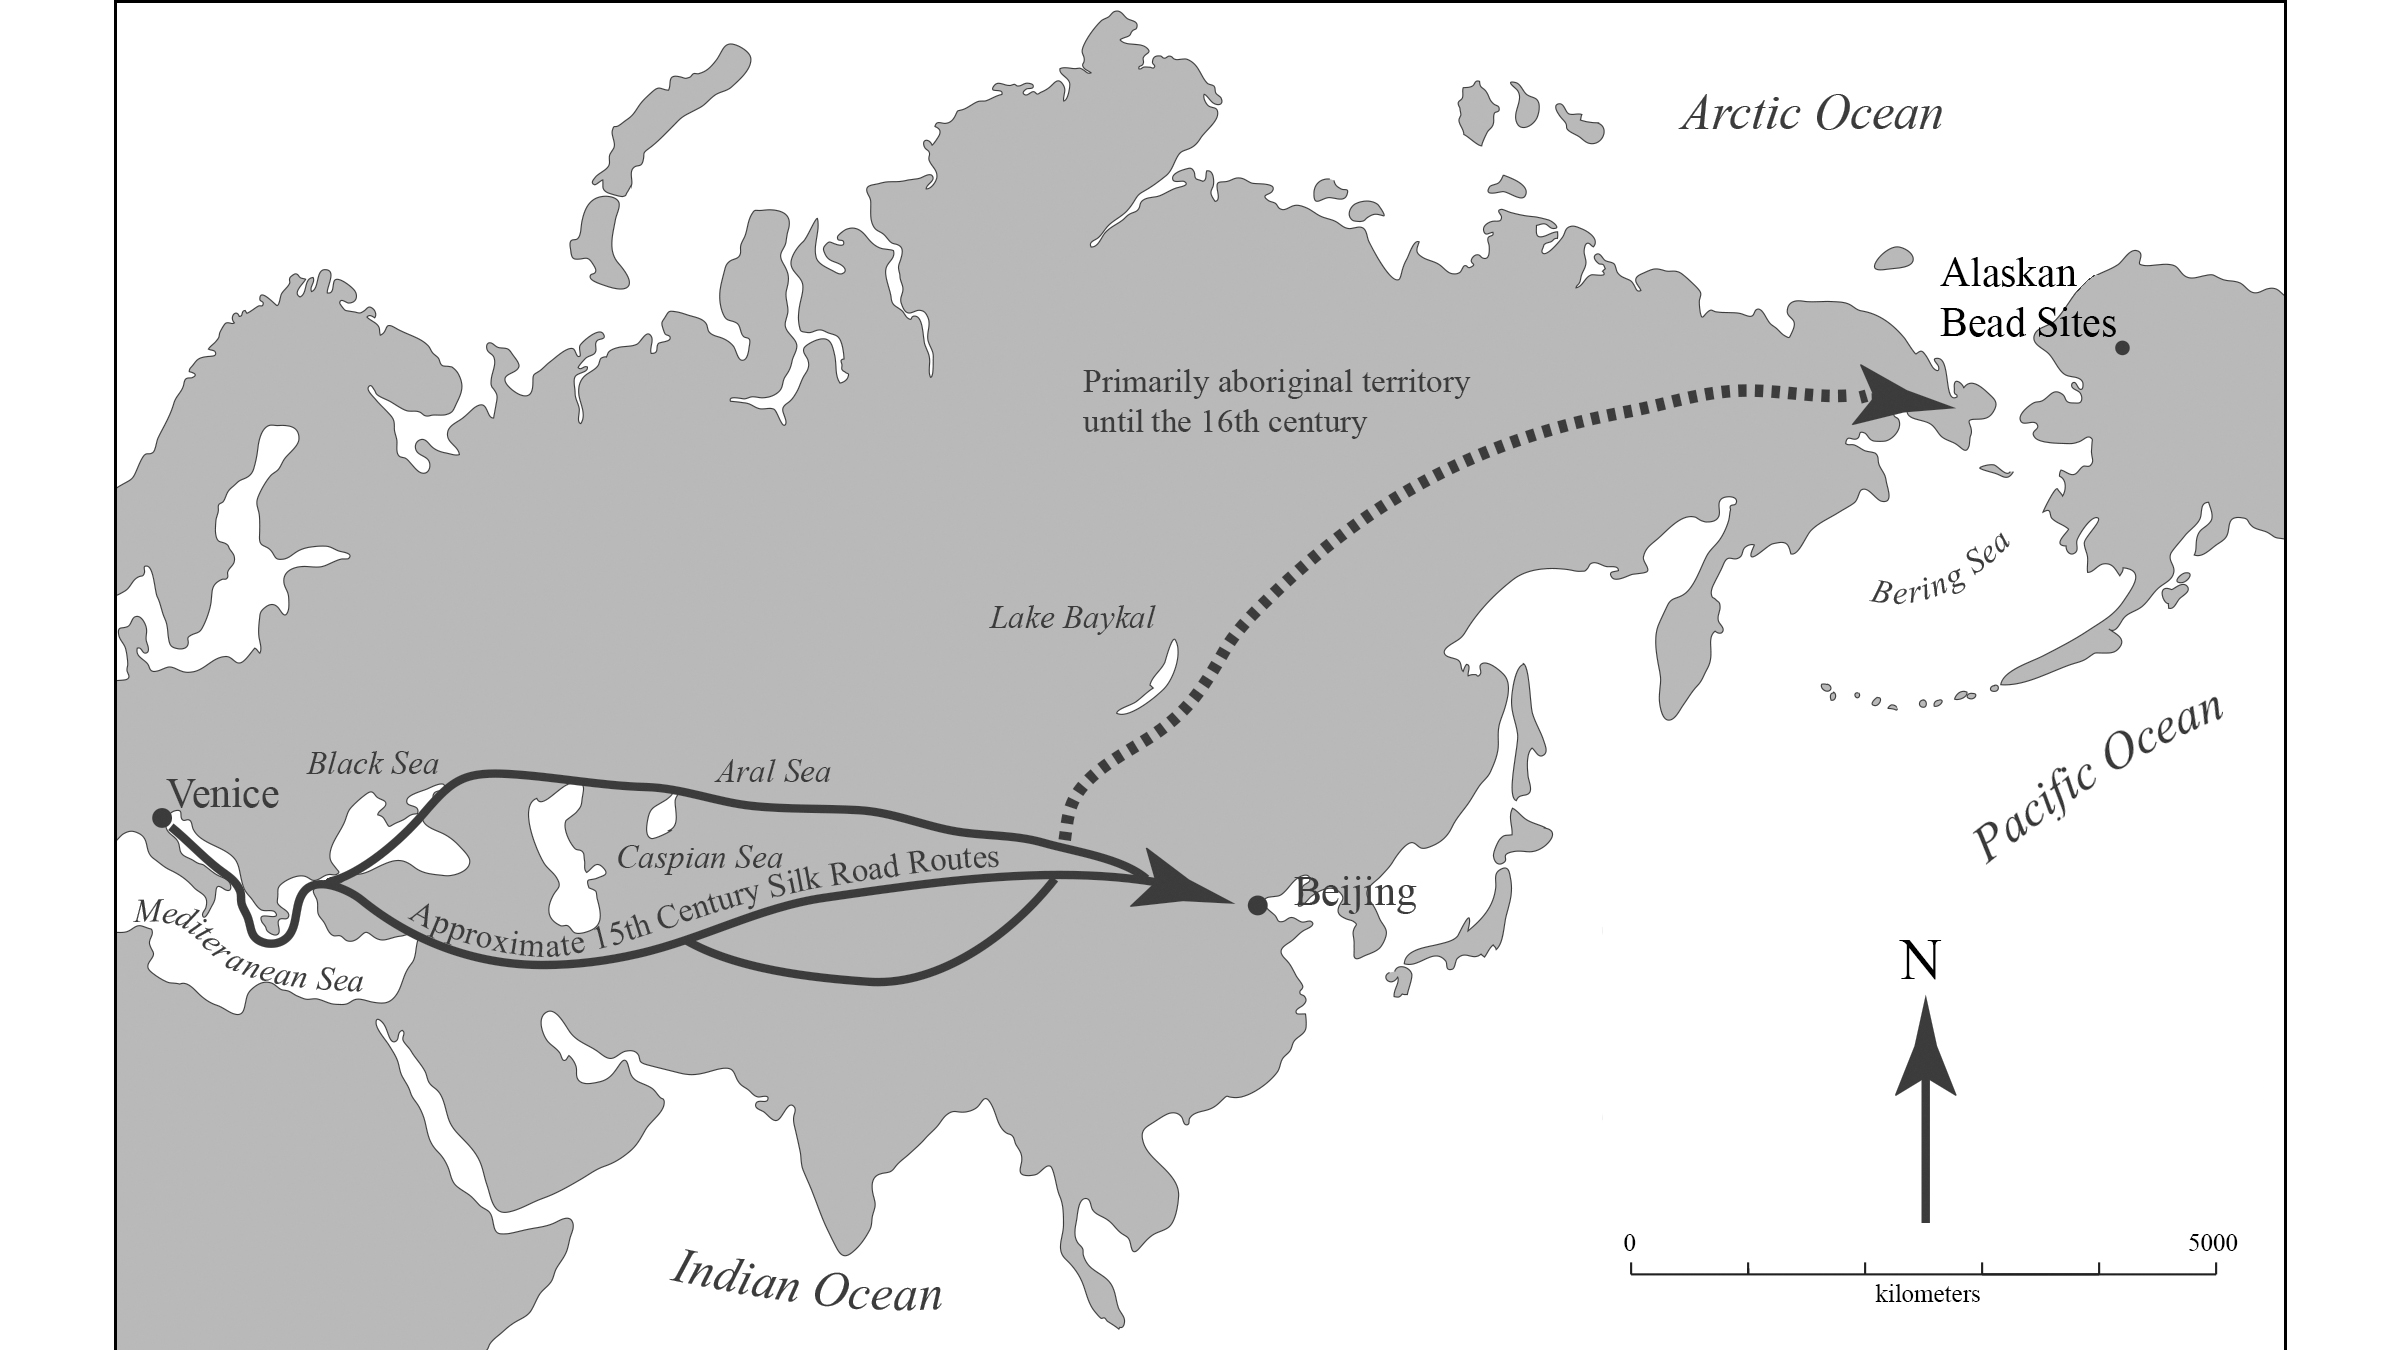 It's unknown how the beads made it from Europe to Alaska, but possible routes are highlighted here.